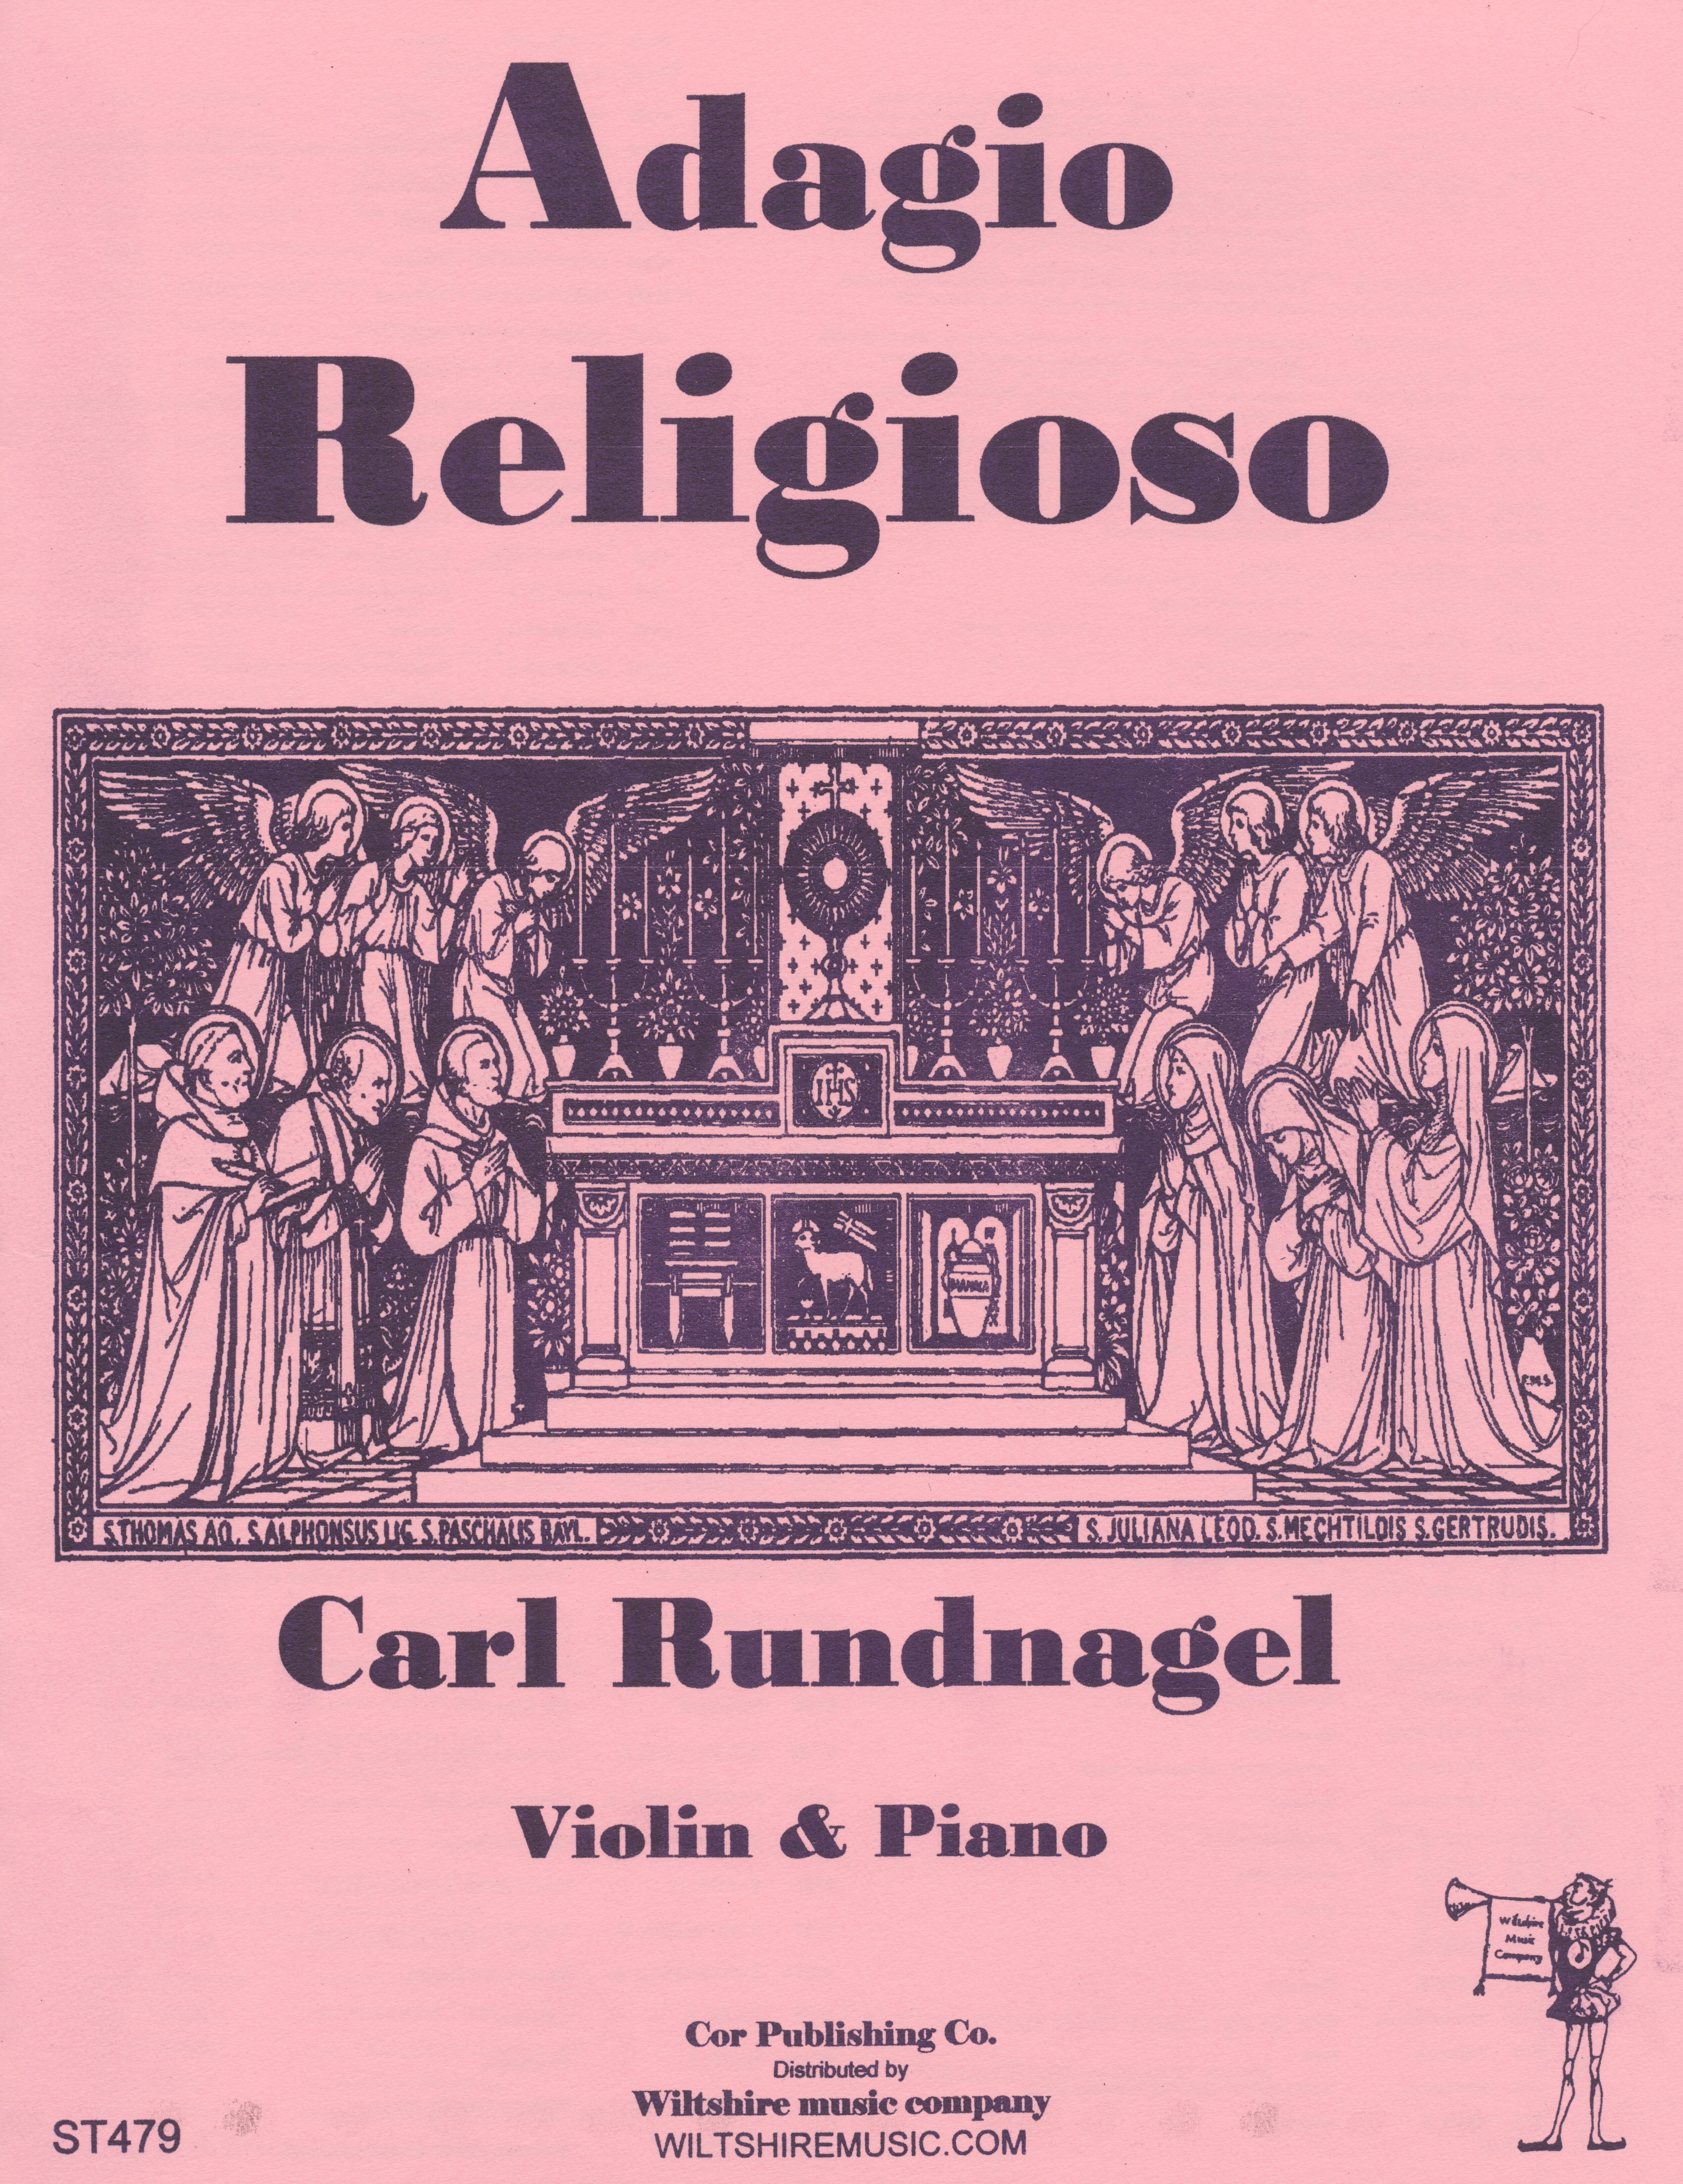 Adagio Religioso, Carl Rundnagel, violin & piano